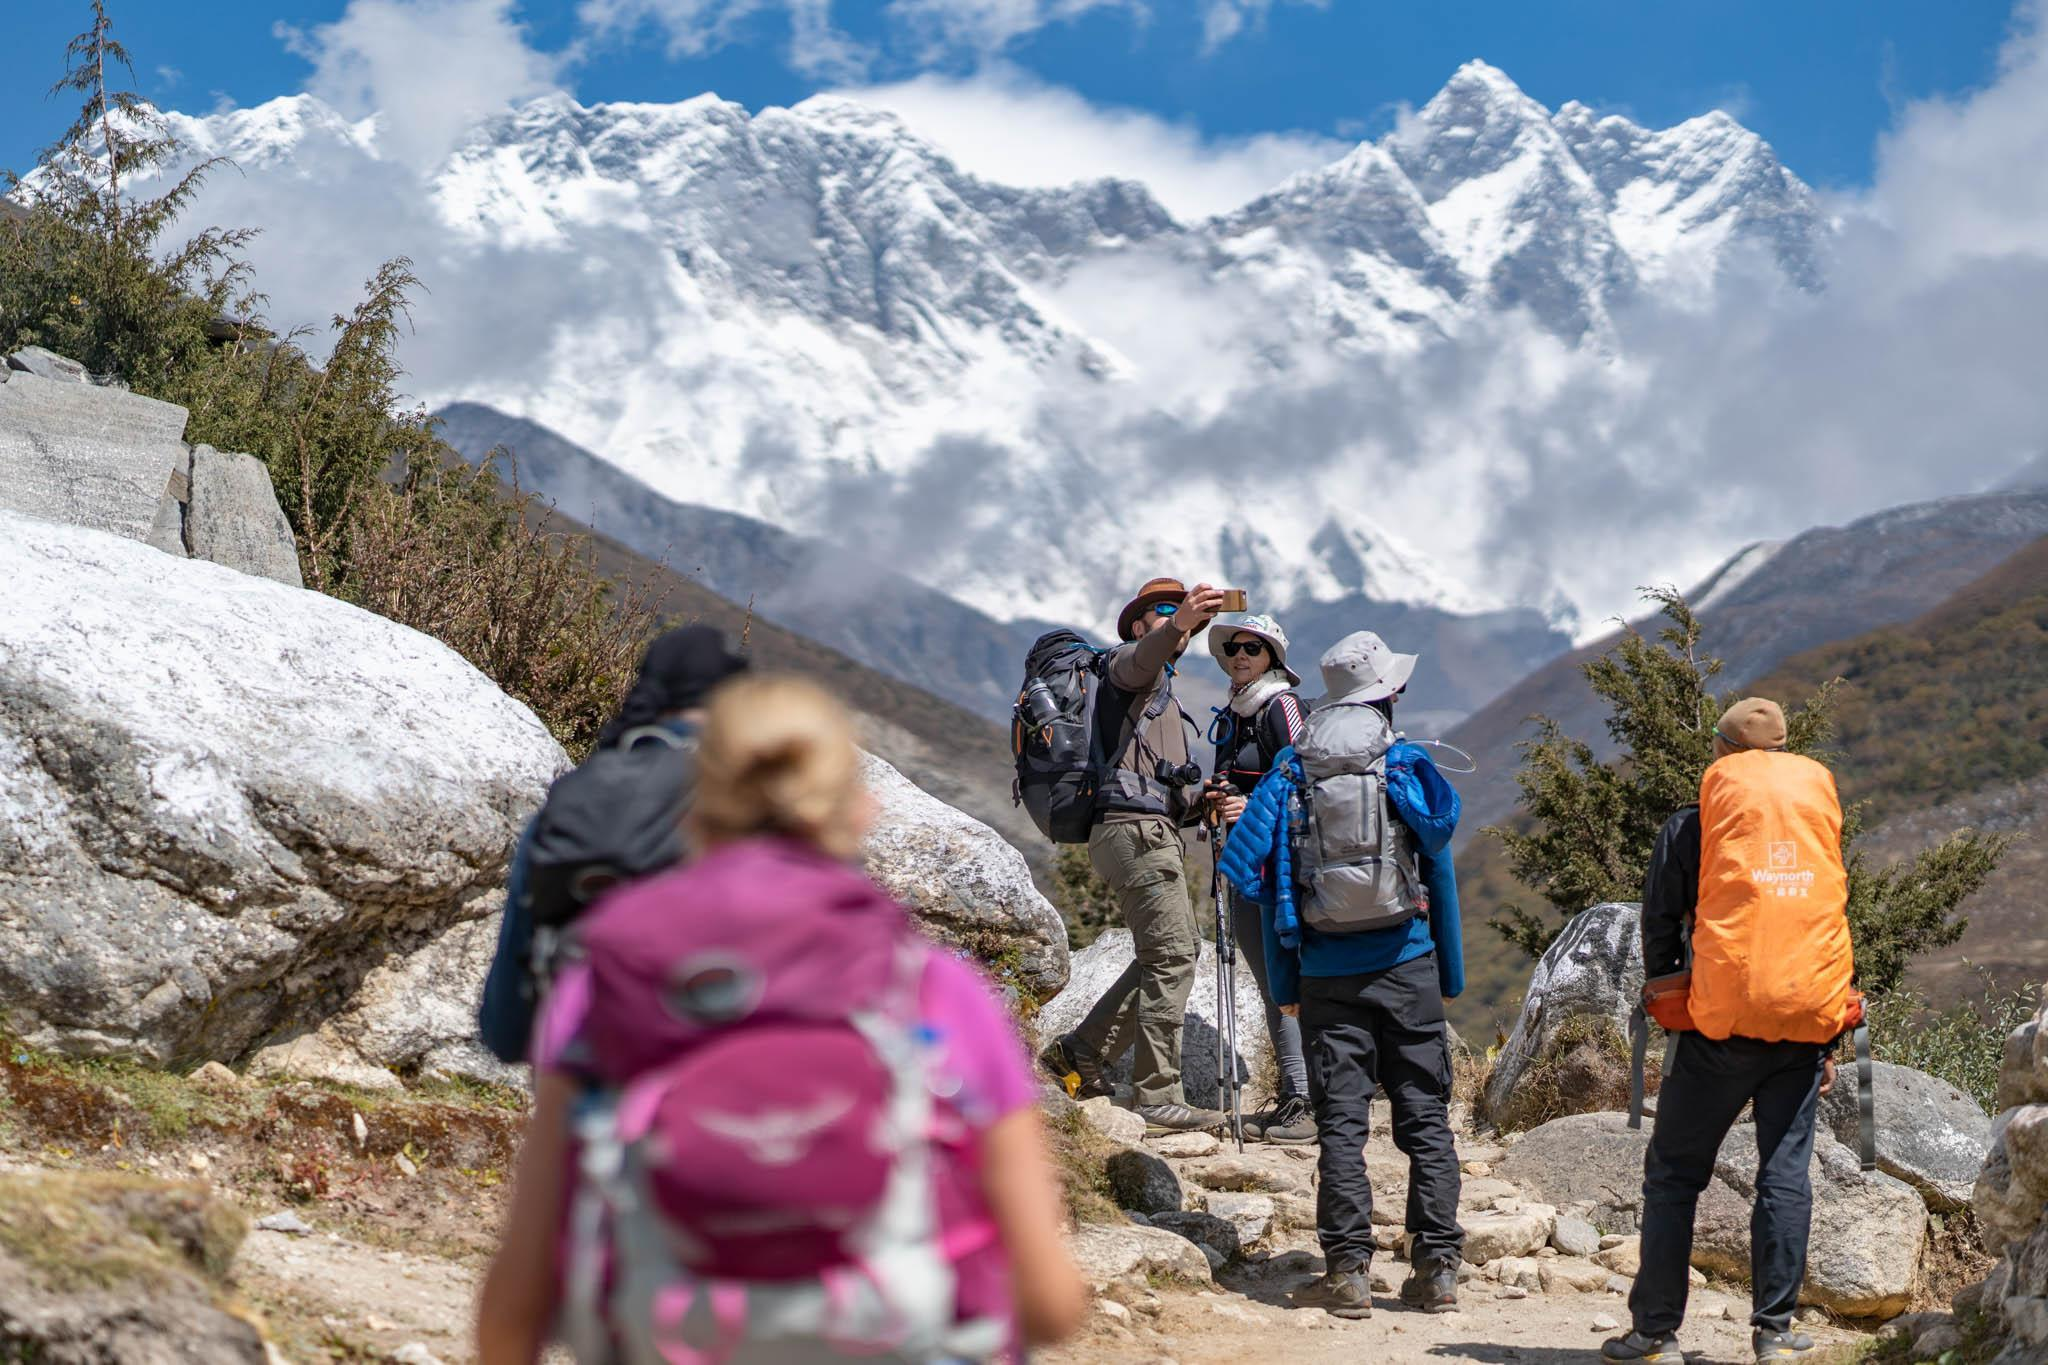 A group of hikers looking at the mountain and taking pictures